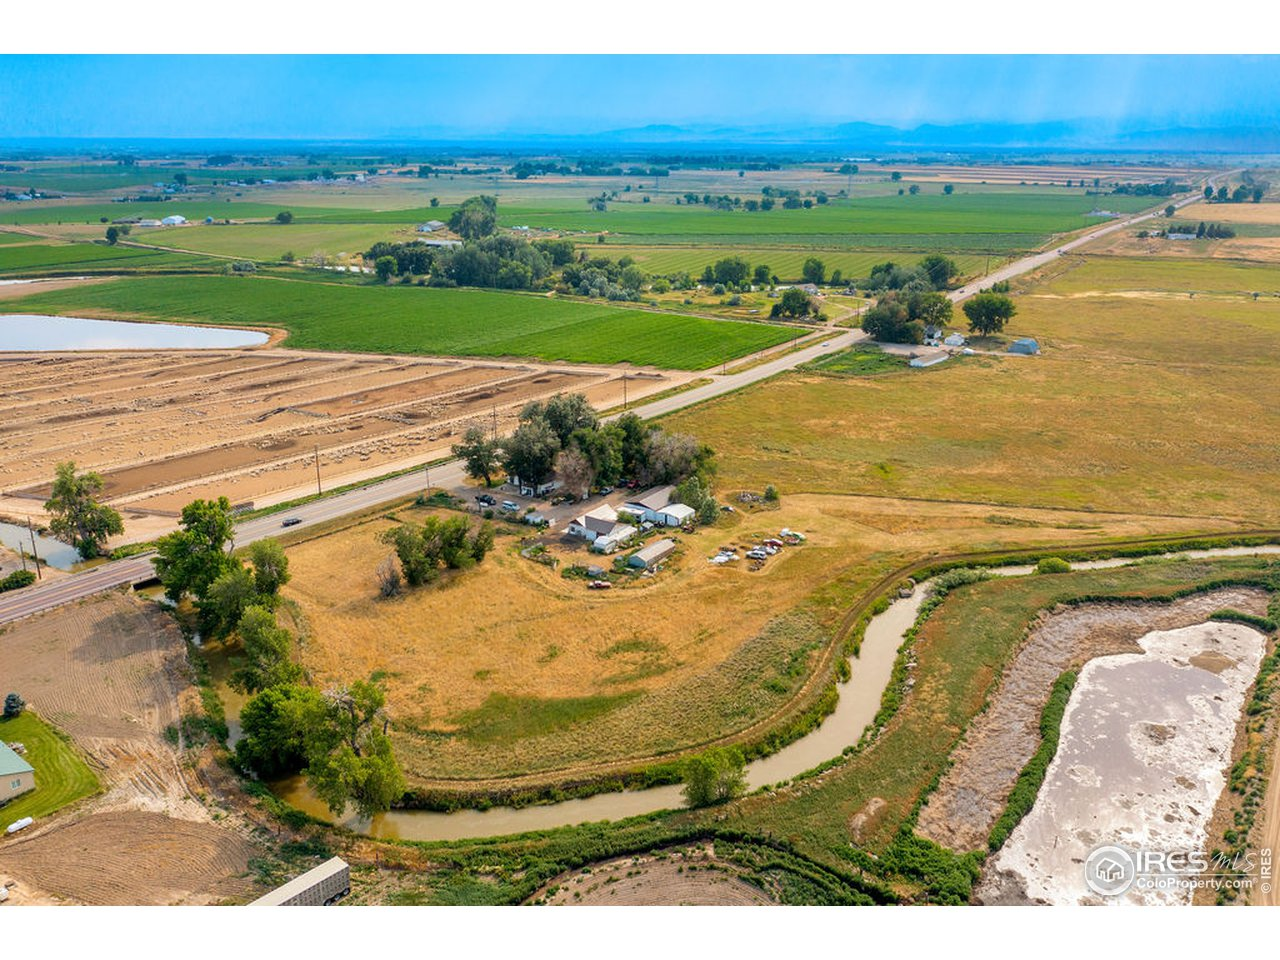 Aerial view looking south-west shows the property and the various outbuildings.